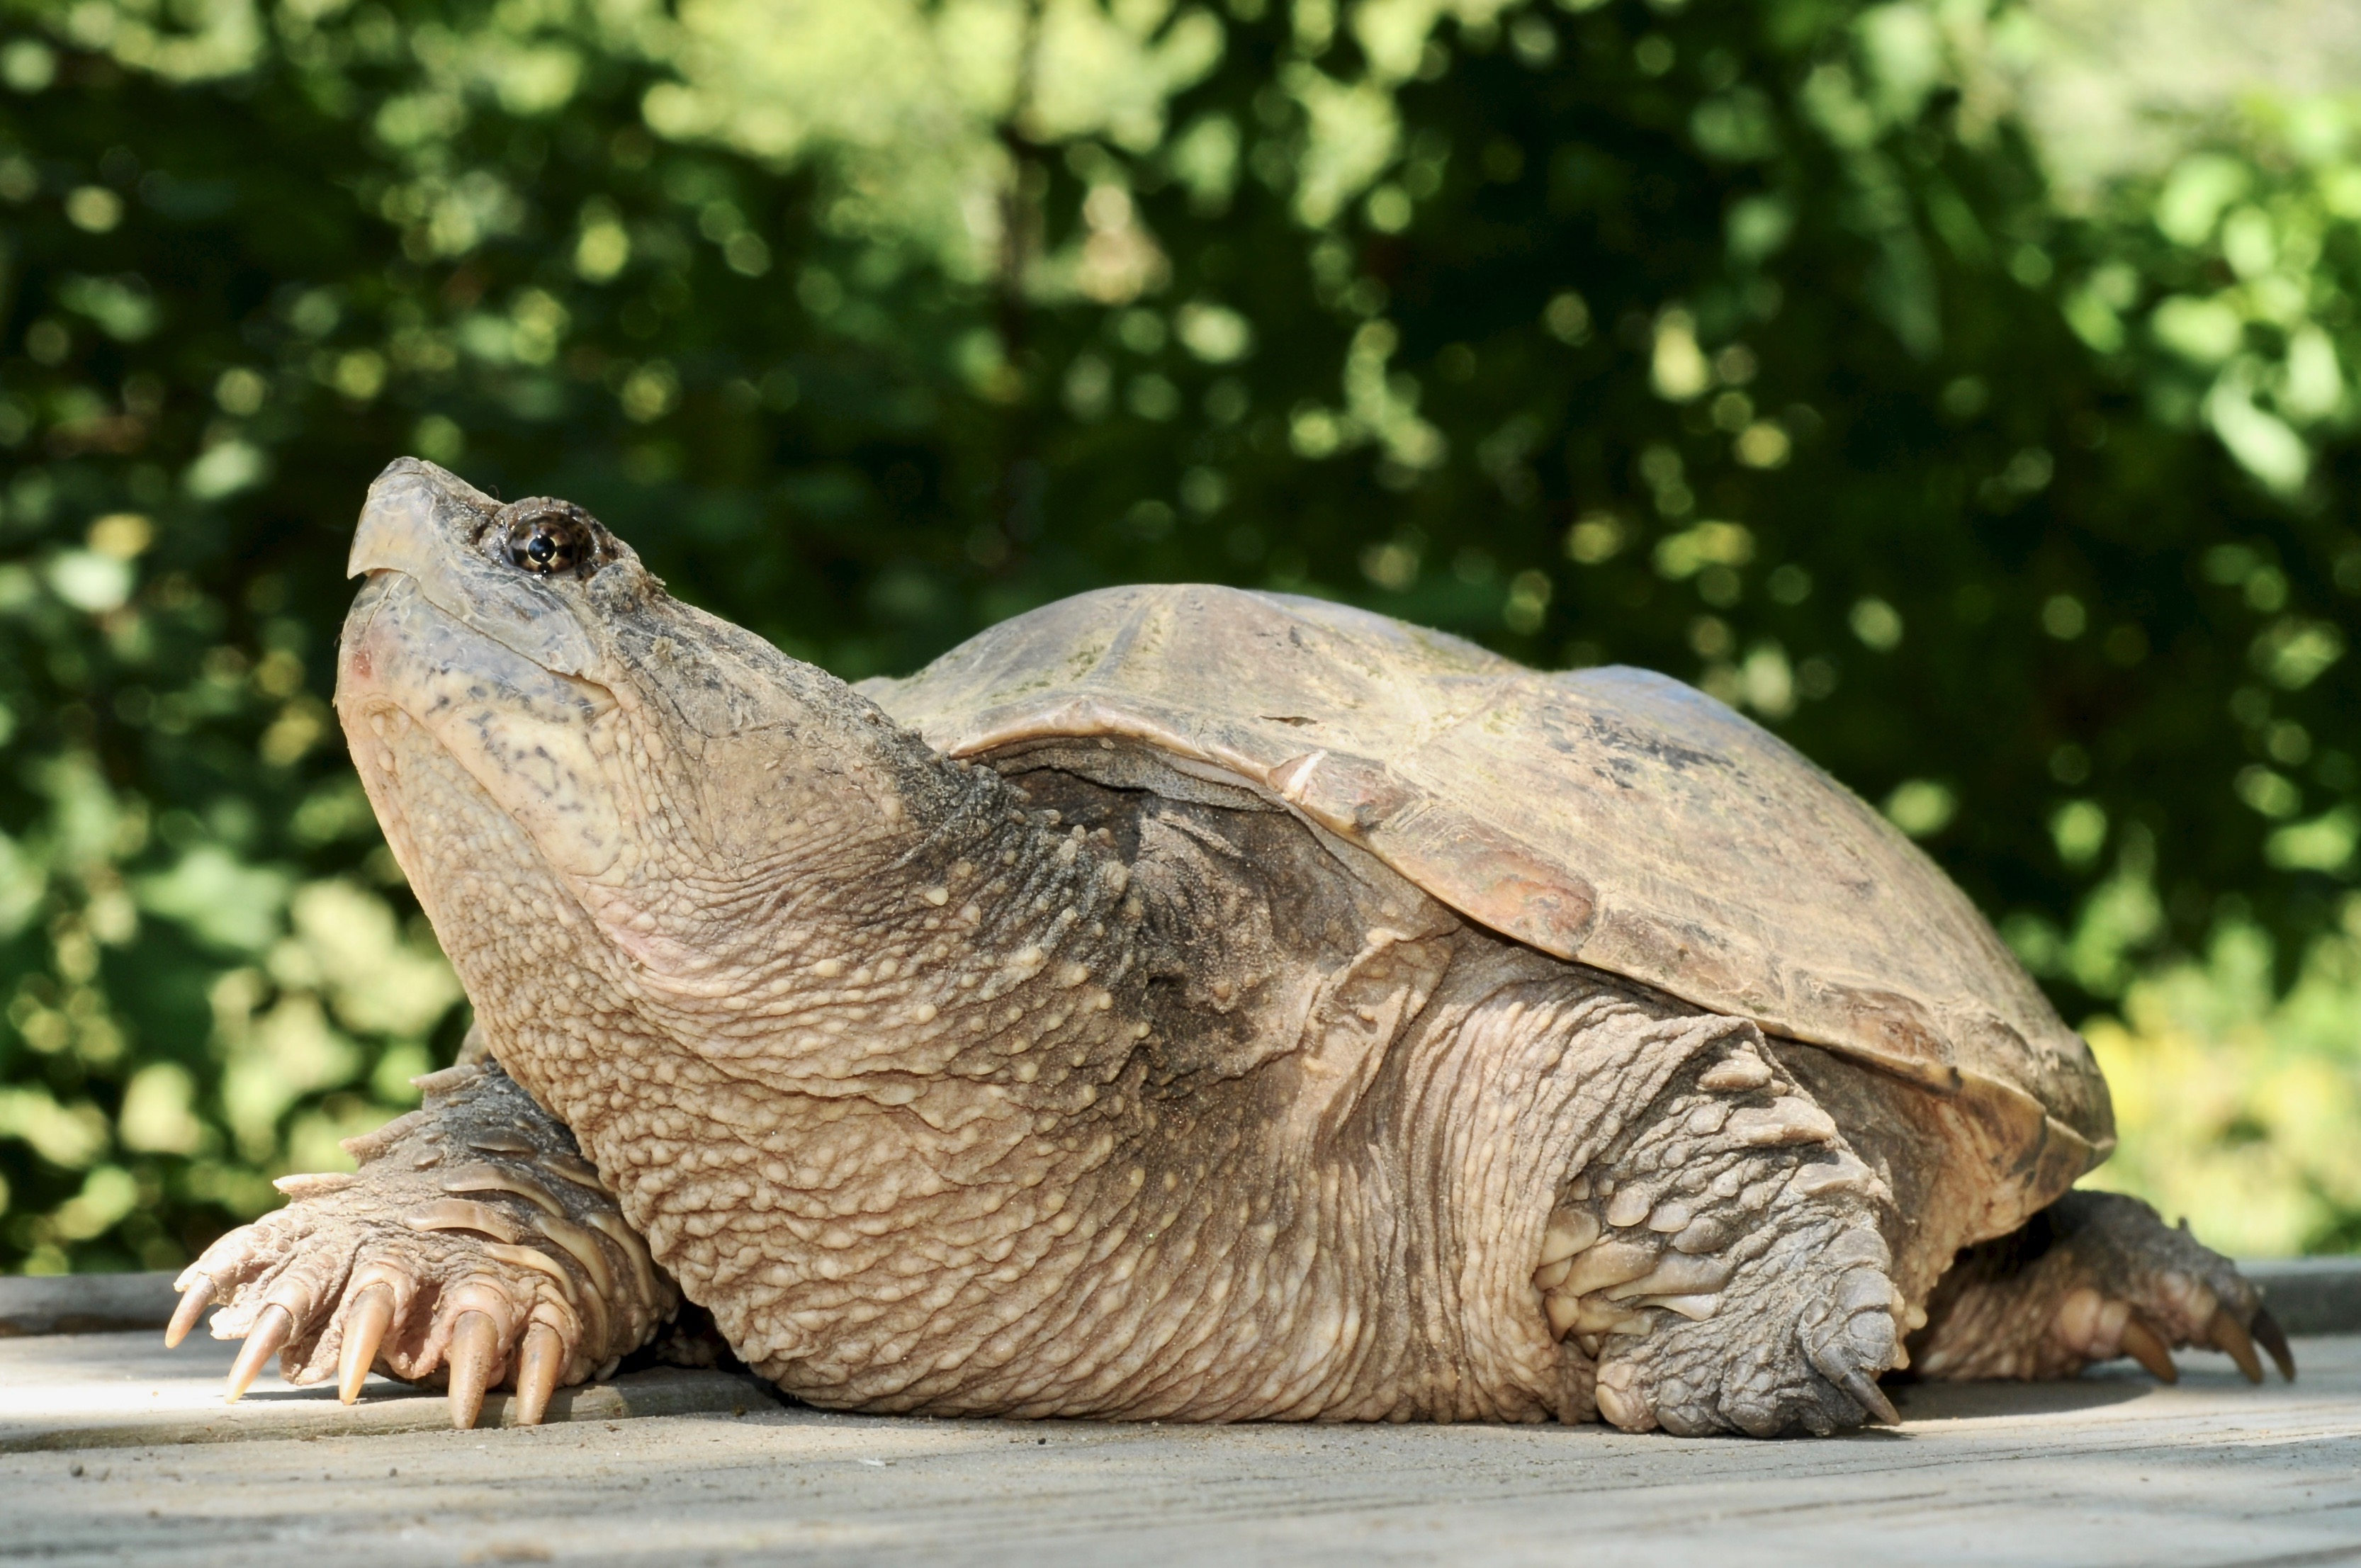 Common Snapping Turtle 127